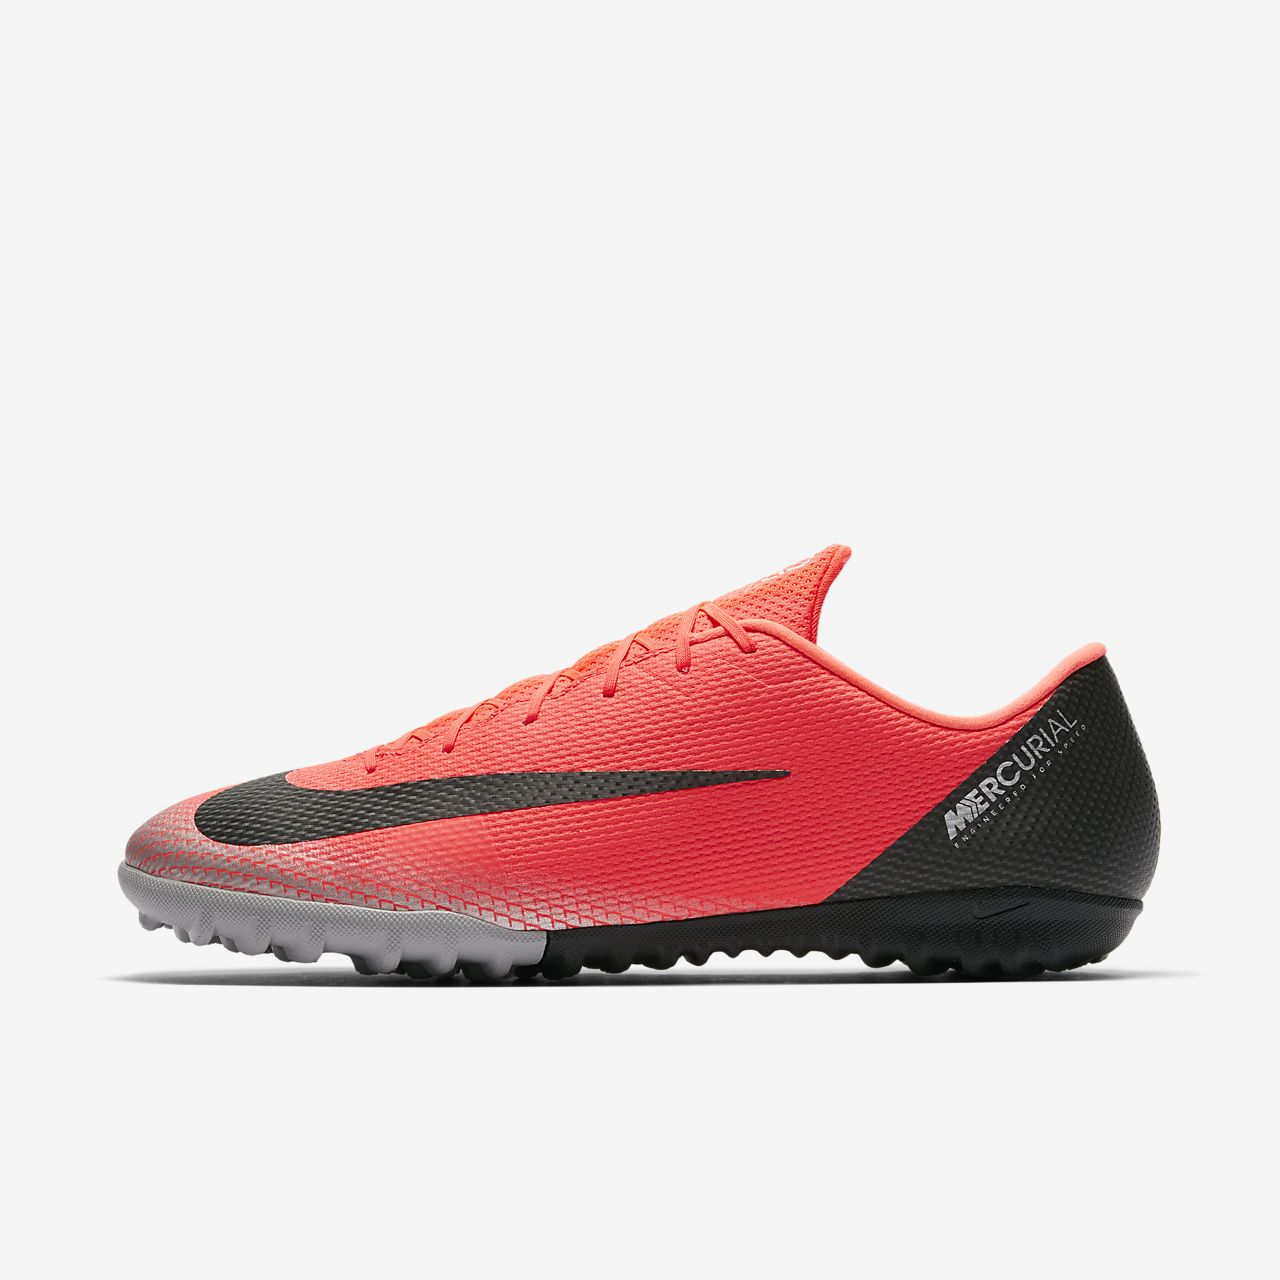 Nike MercurialX Vapor XII Academy CR7 Turf Football Shoe